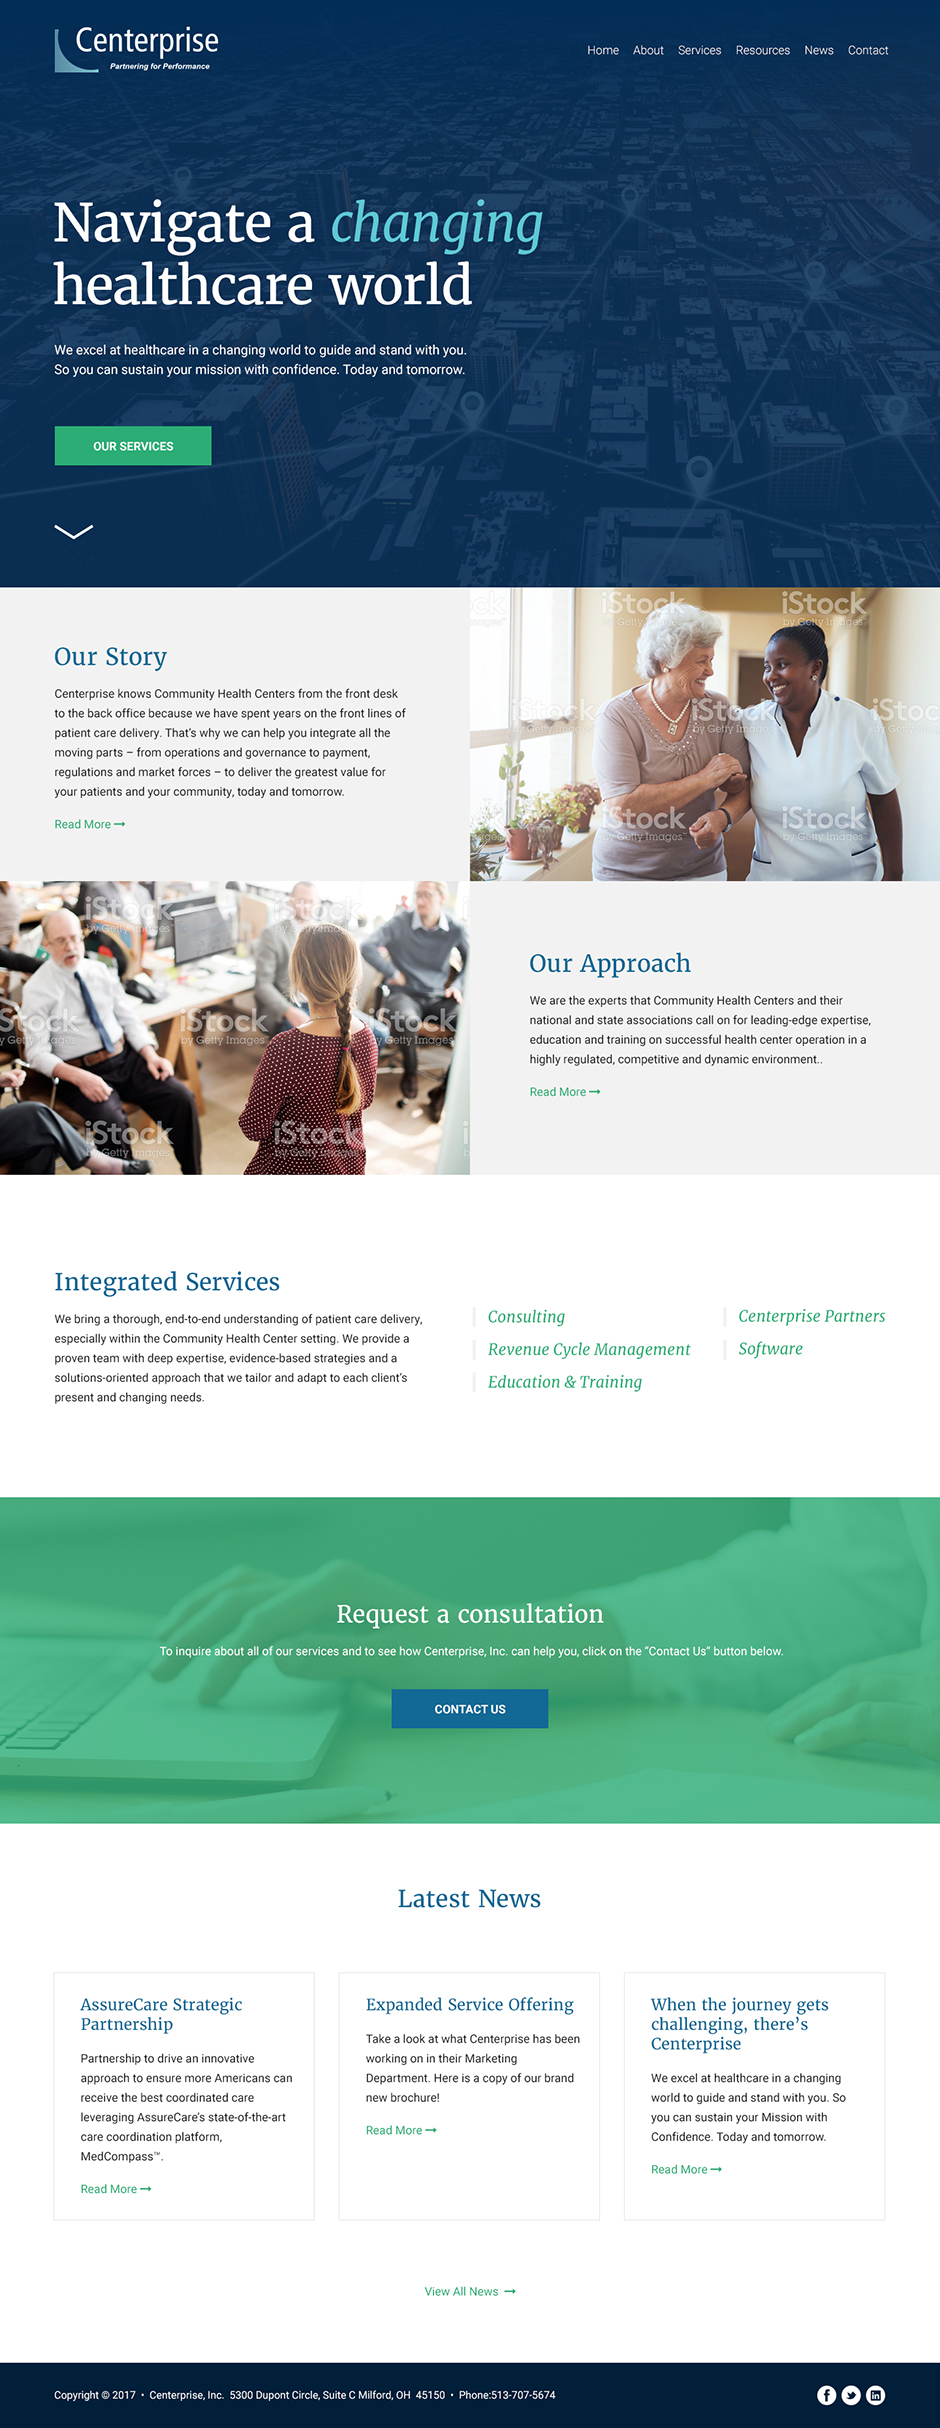 Centerprise Healthcare Consulting Responsive Website Design